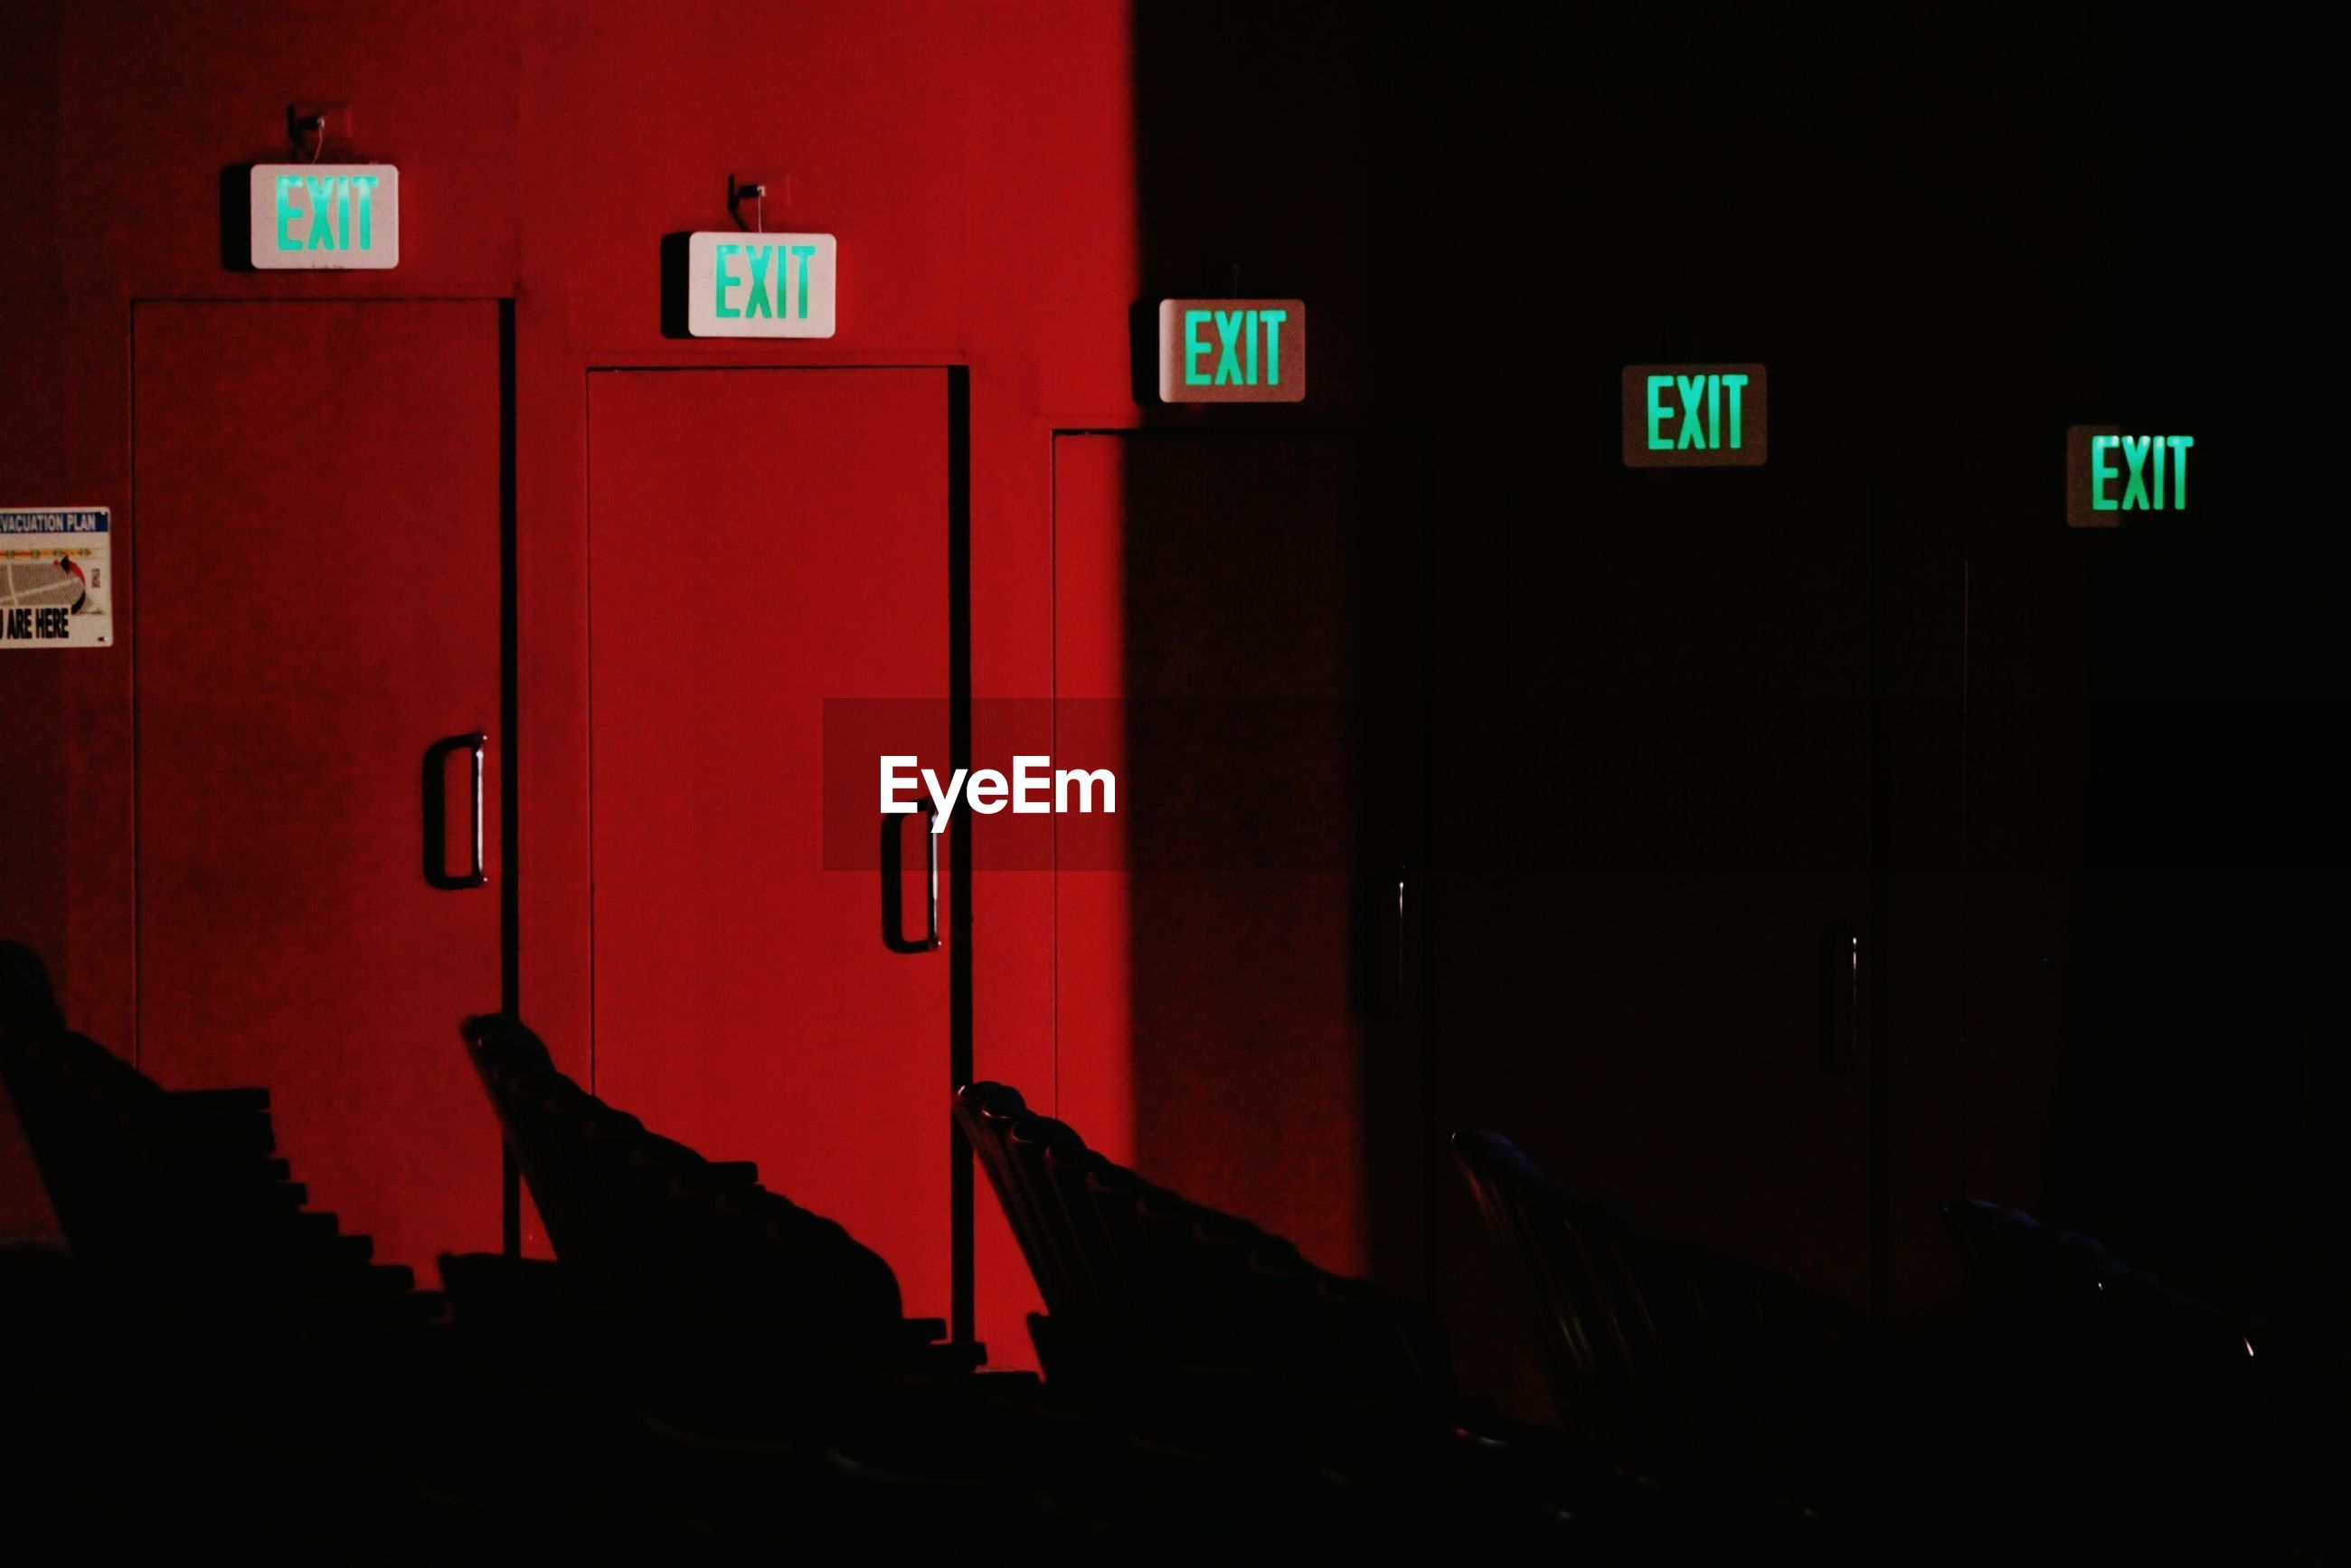 Exit signs on red wall at night